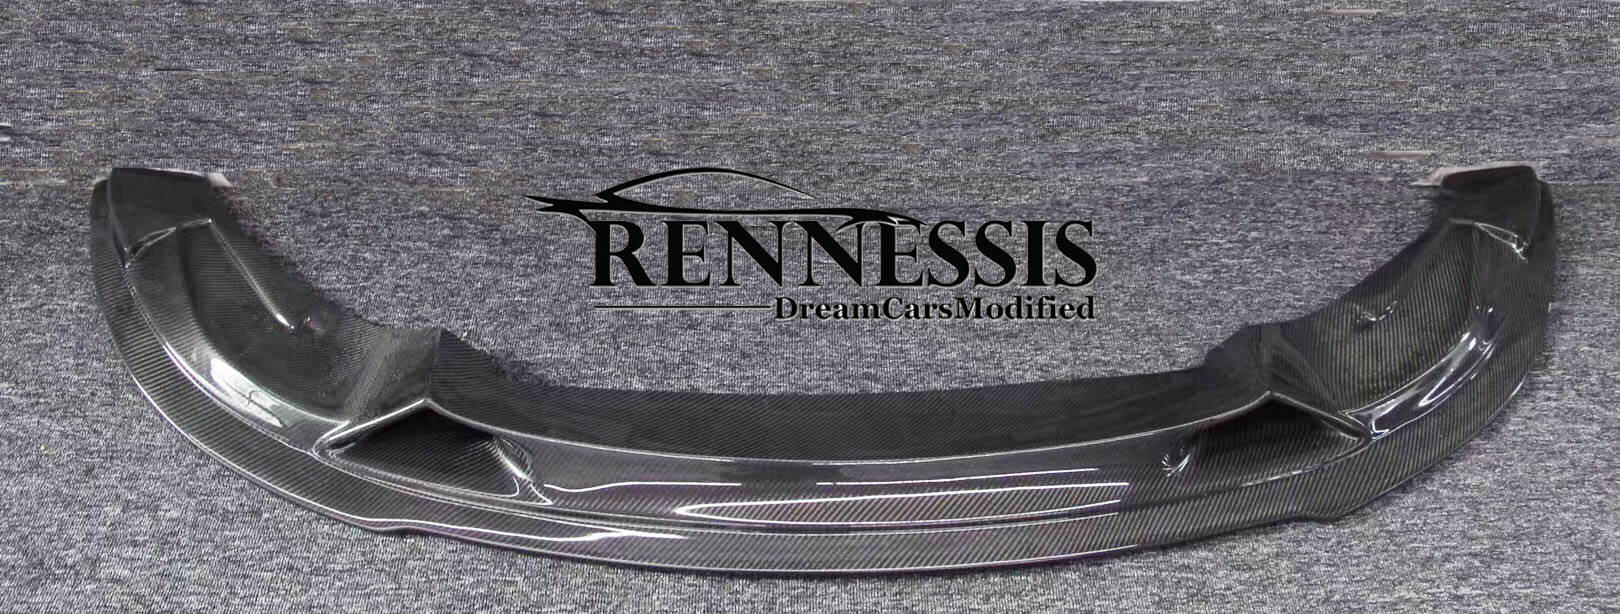 rennessis-racing-evoo-gt4-carbon-fibre-front-splitter-for-f80-m3-f82-m4.jpg